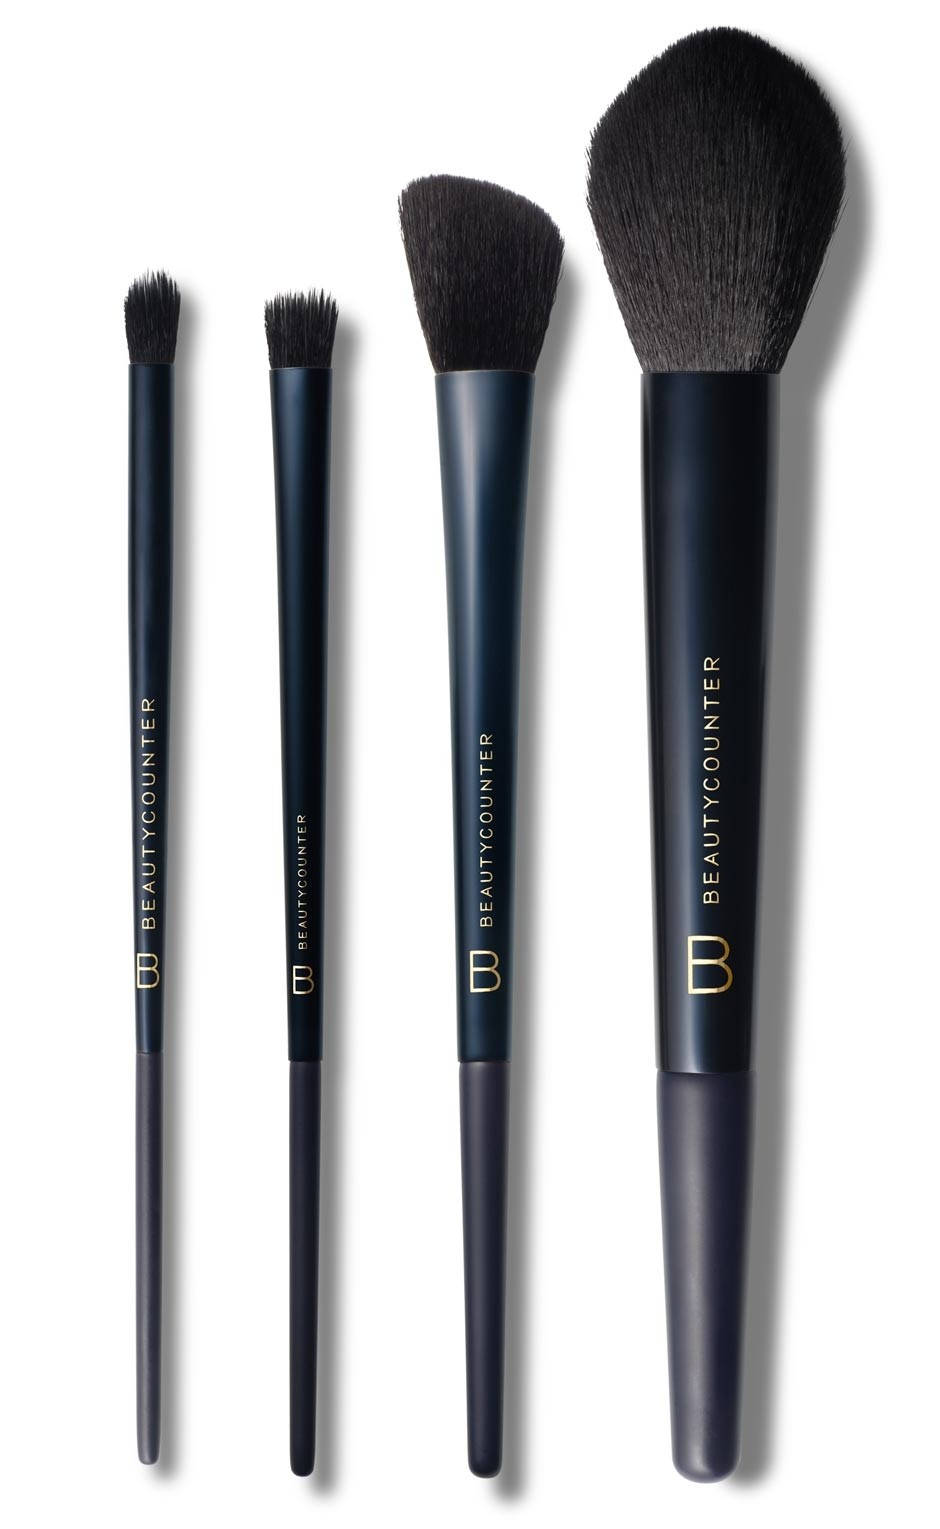 Best of Brushes Set - $58